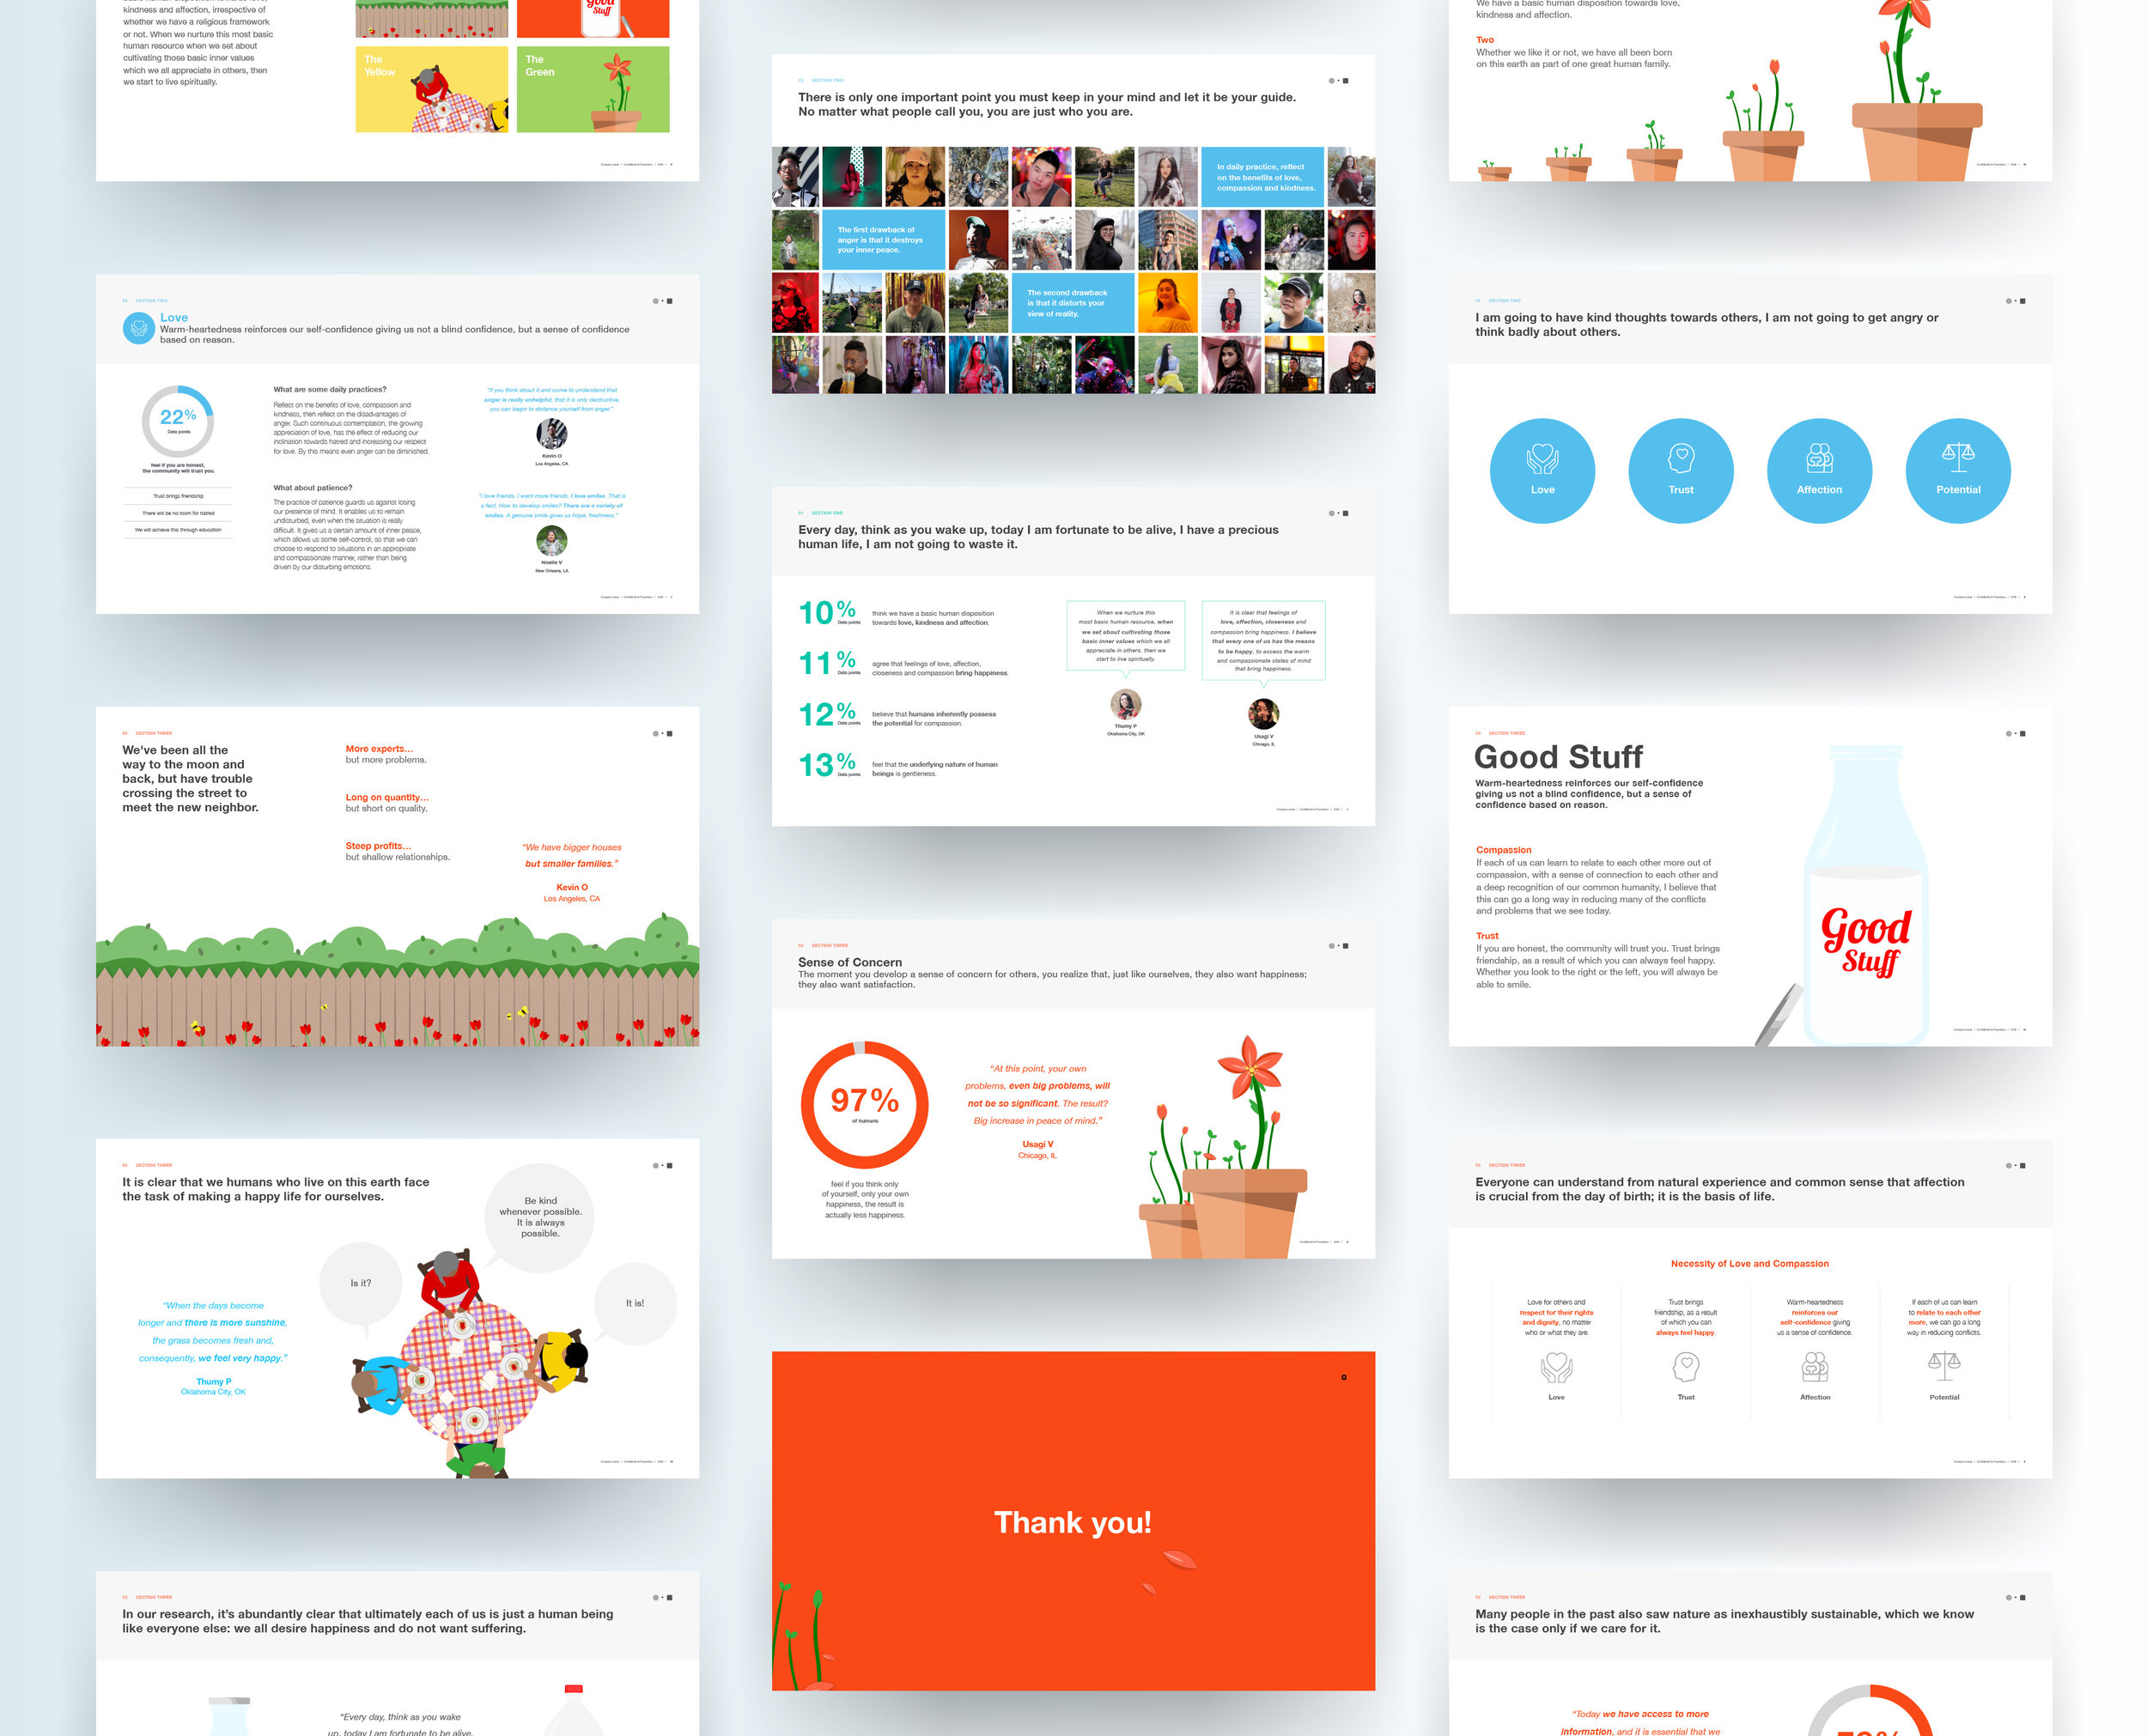 Presentation layout designs, illustrations, and iconography.